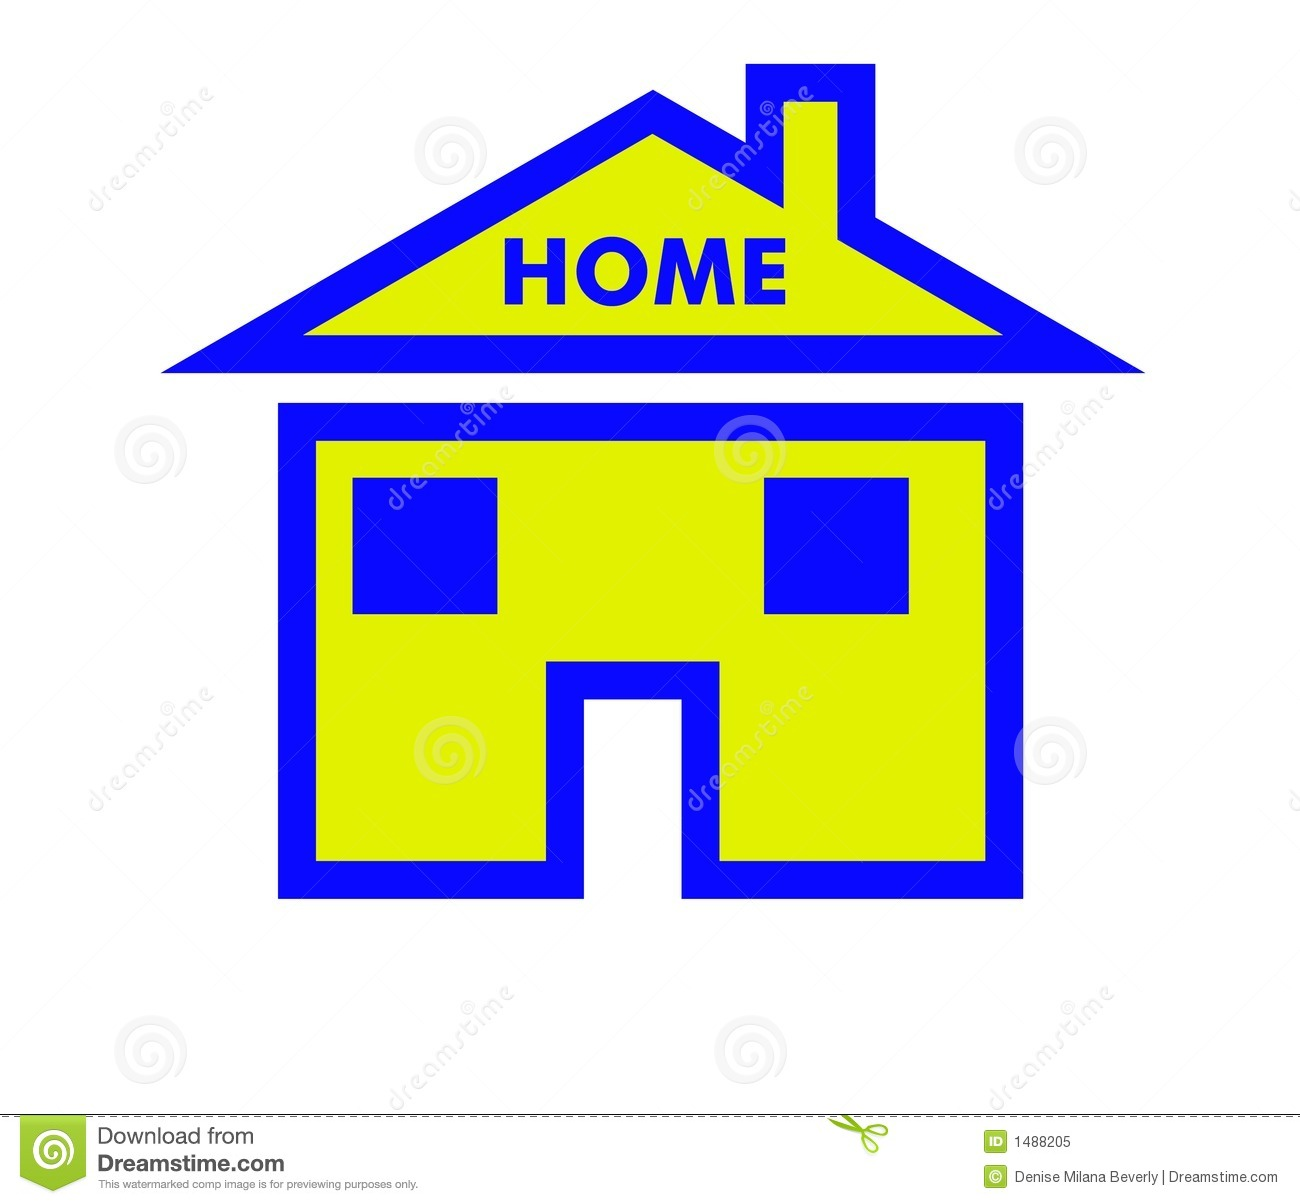 Home symbol for computer program or website royalty free Website home image